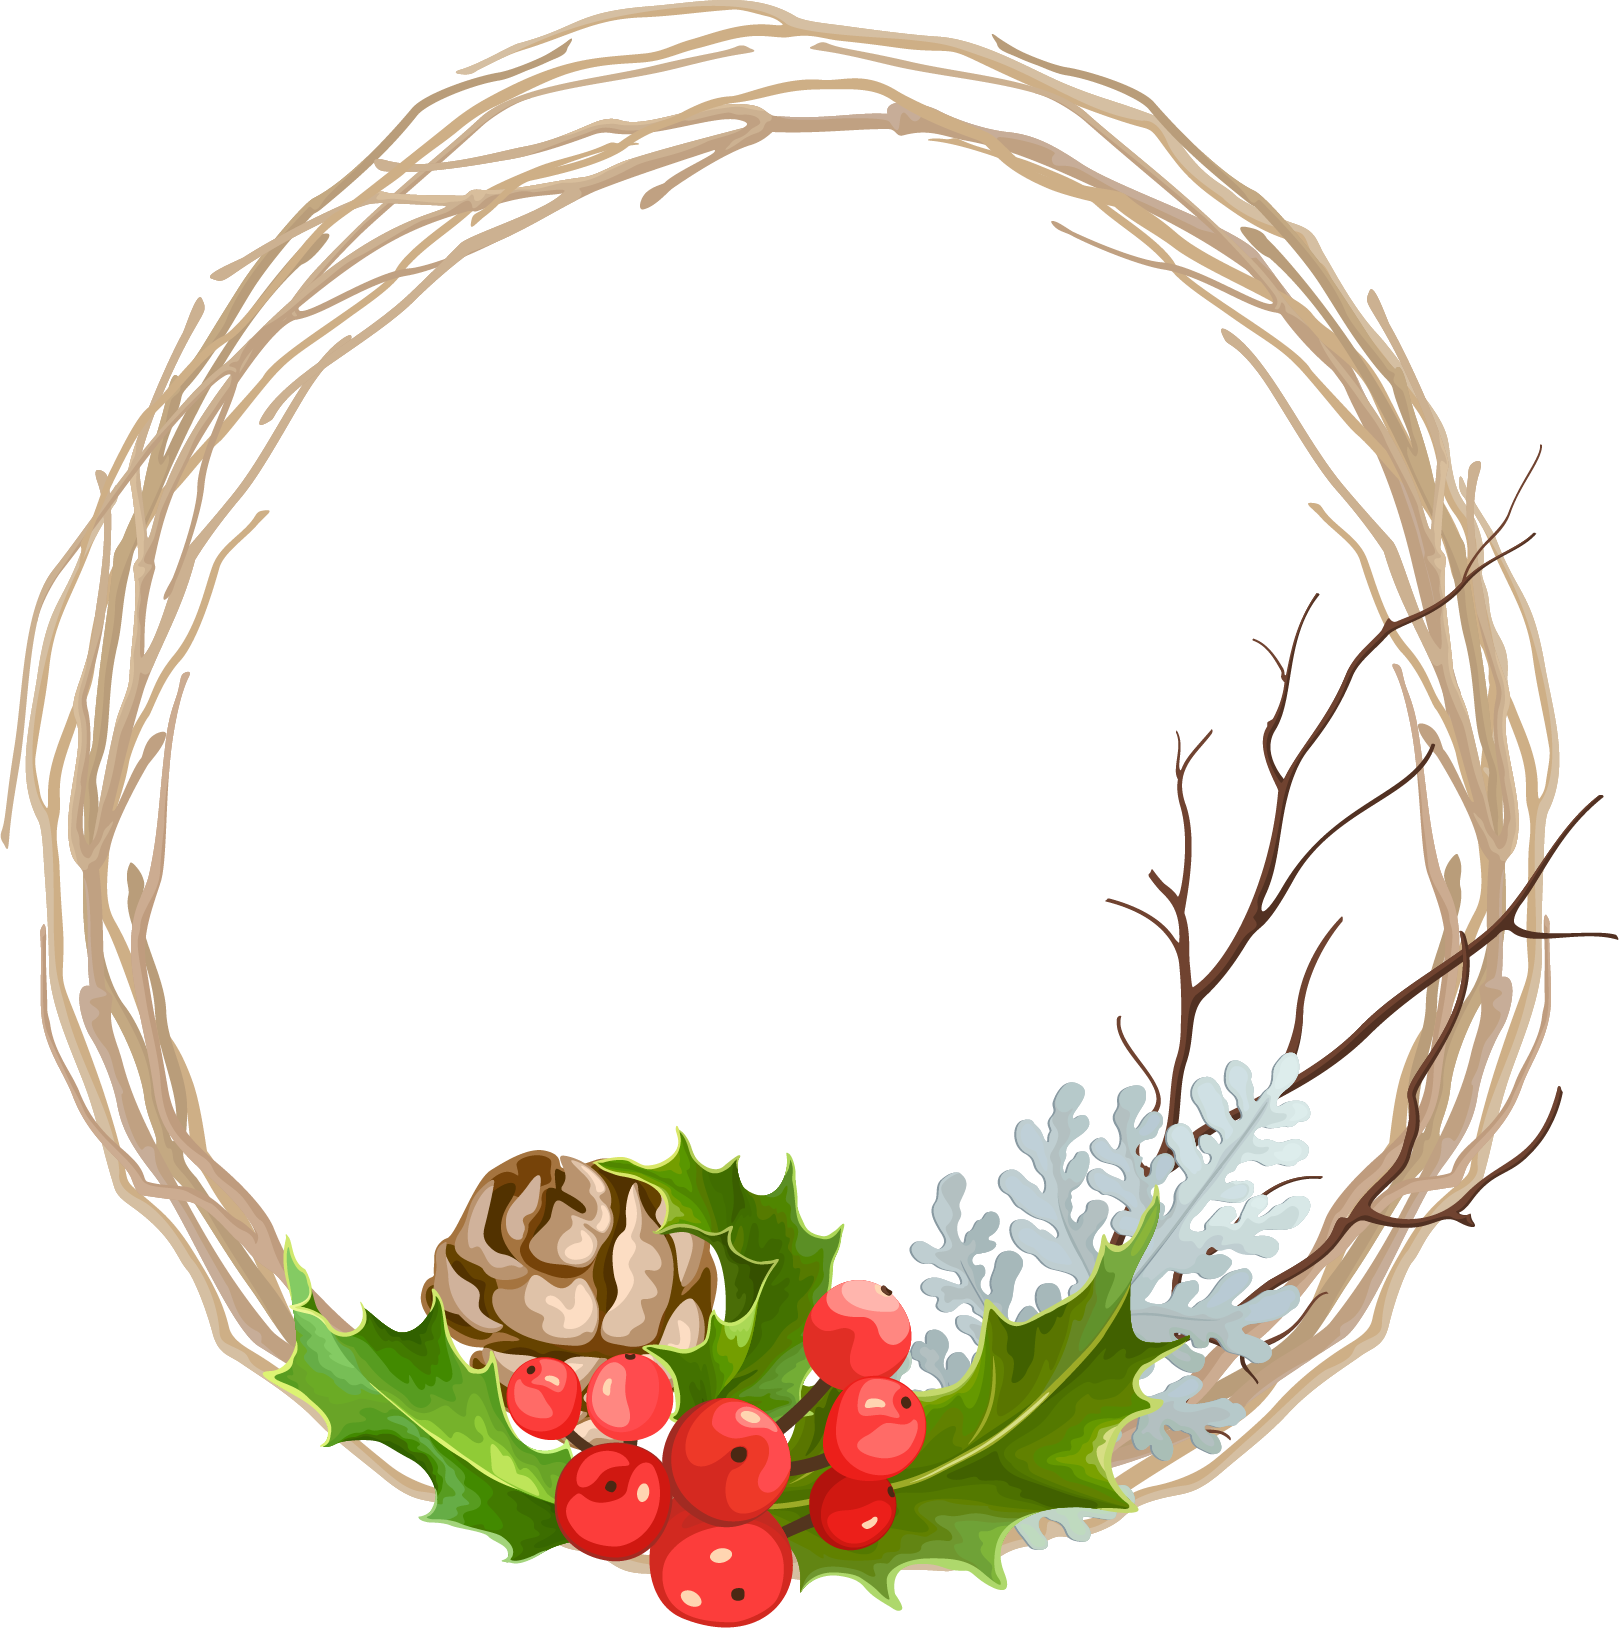 svg transparent stock Christmas garland decoration transprent. Pomegranate vector wreath